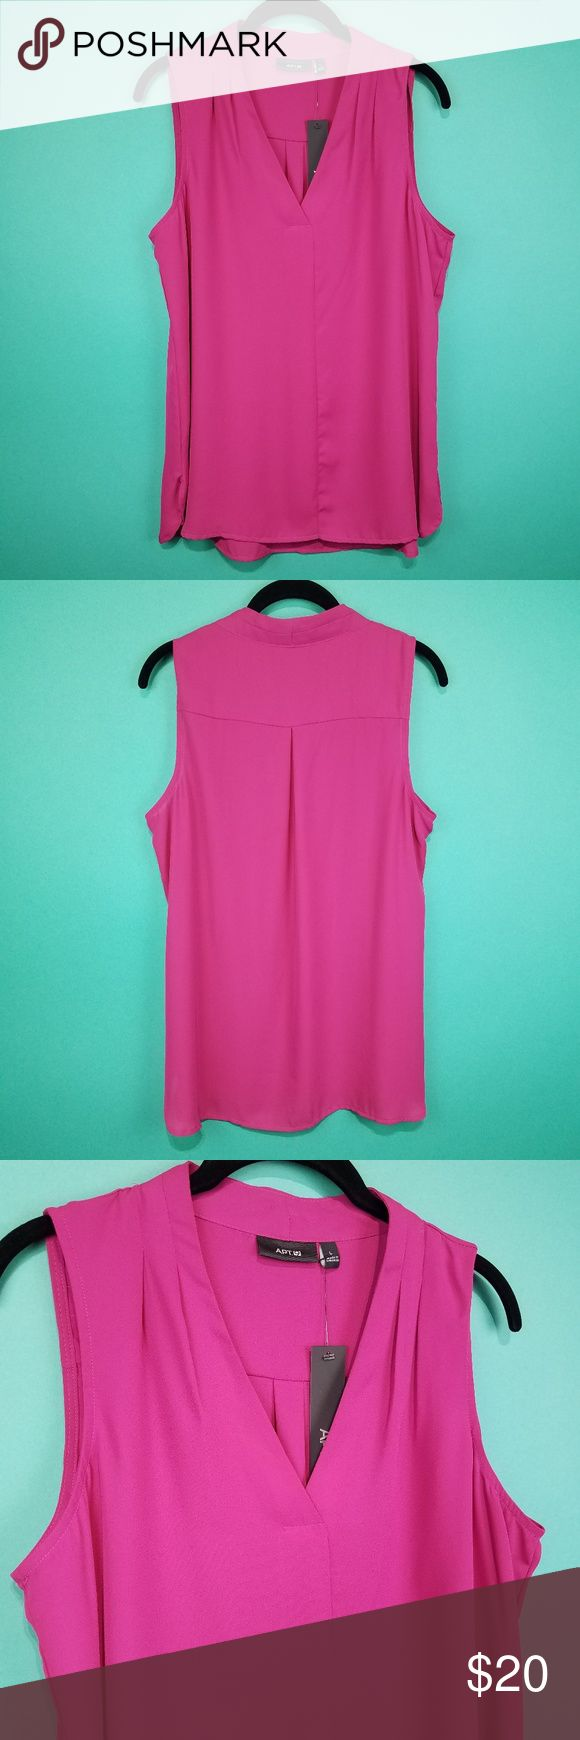 """Apt 9 Fuchsia Sleeveless Blouse Apt 9 Pink Sleeveless Blouse Features: Bright fuchsia flowy lightweight fabric V-neckline style with seam down front Seam across upper back and slight gathering detail  Size: L Measurements are taken across the front with garment laying flat Armpit to armpit: 20 1/2"""" Length: 26-28"""" Measurements are approximate   New with tag Original tag price: $30 As seen in pictures Colors may vary depending on your monitor/screen  CC2 Apt. 9 Tops Blouses"""